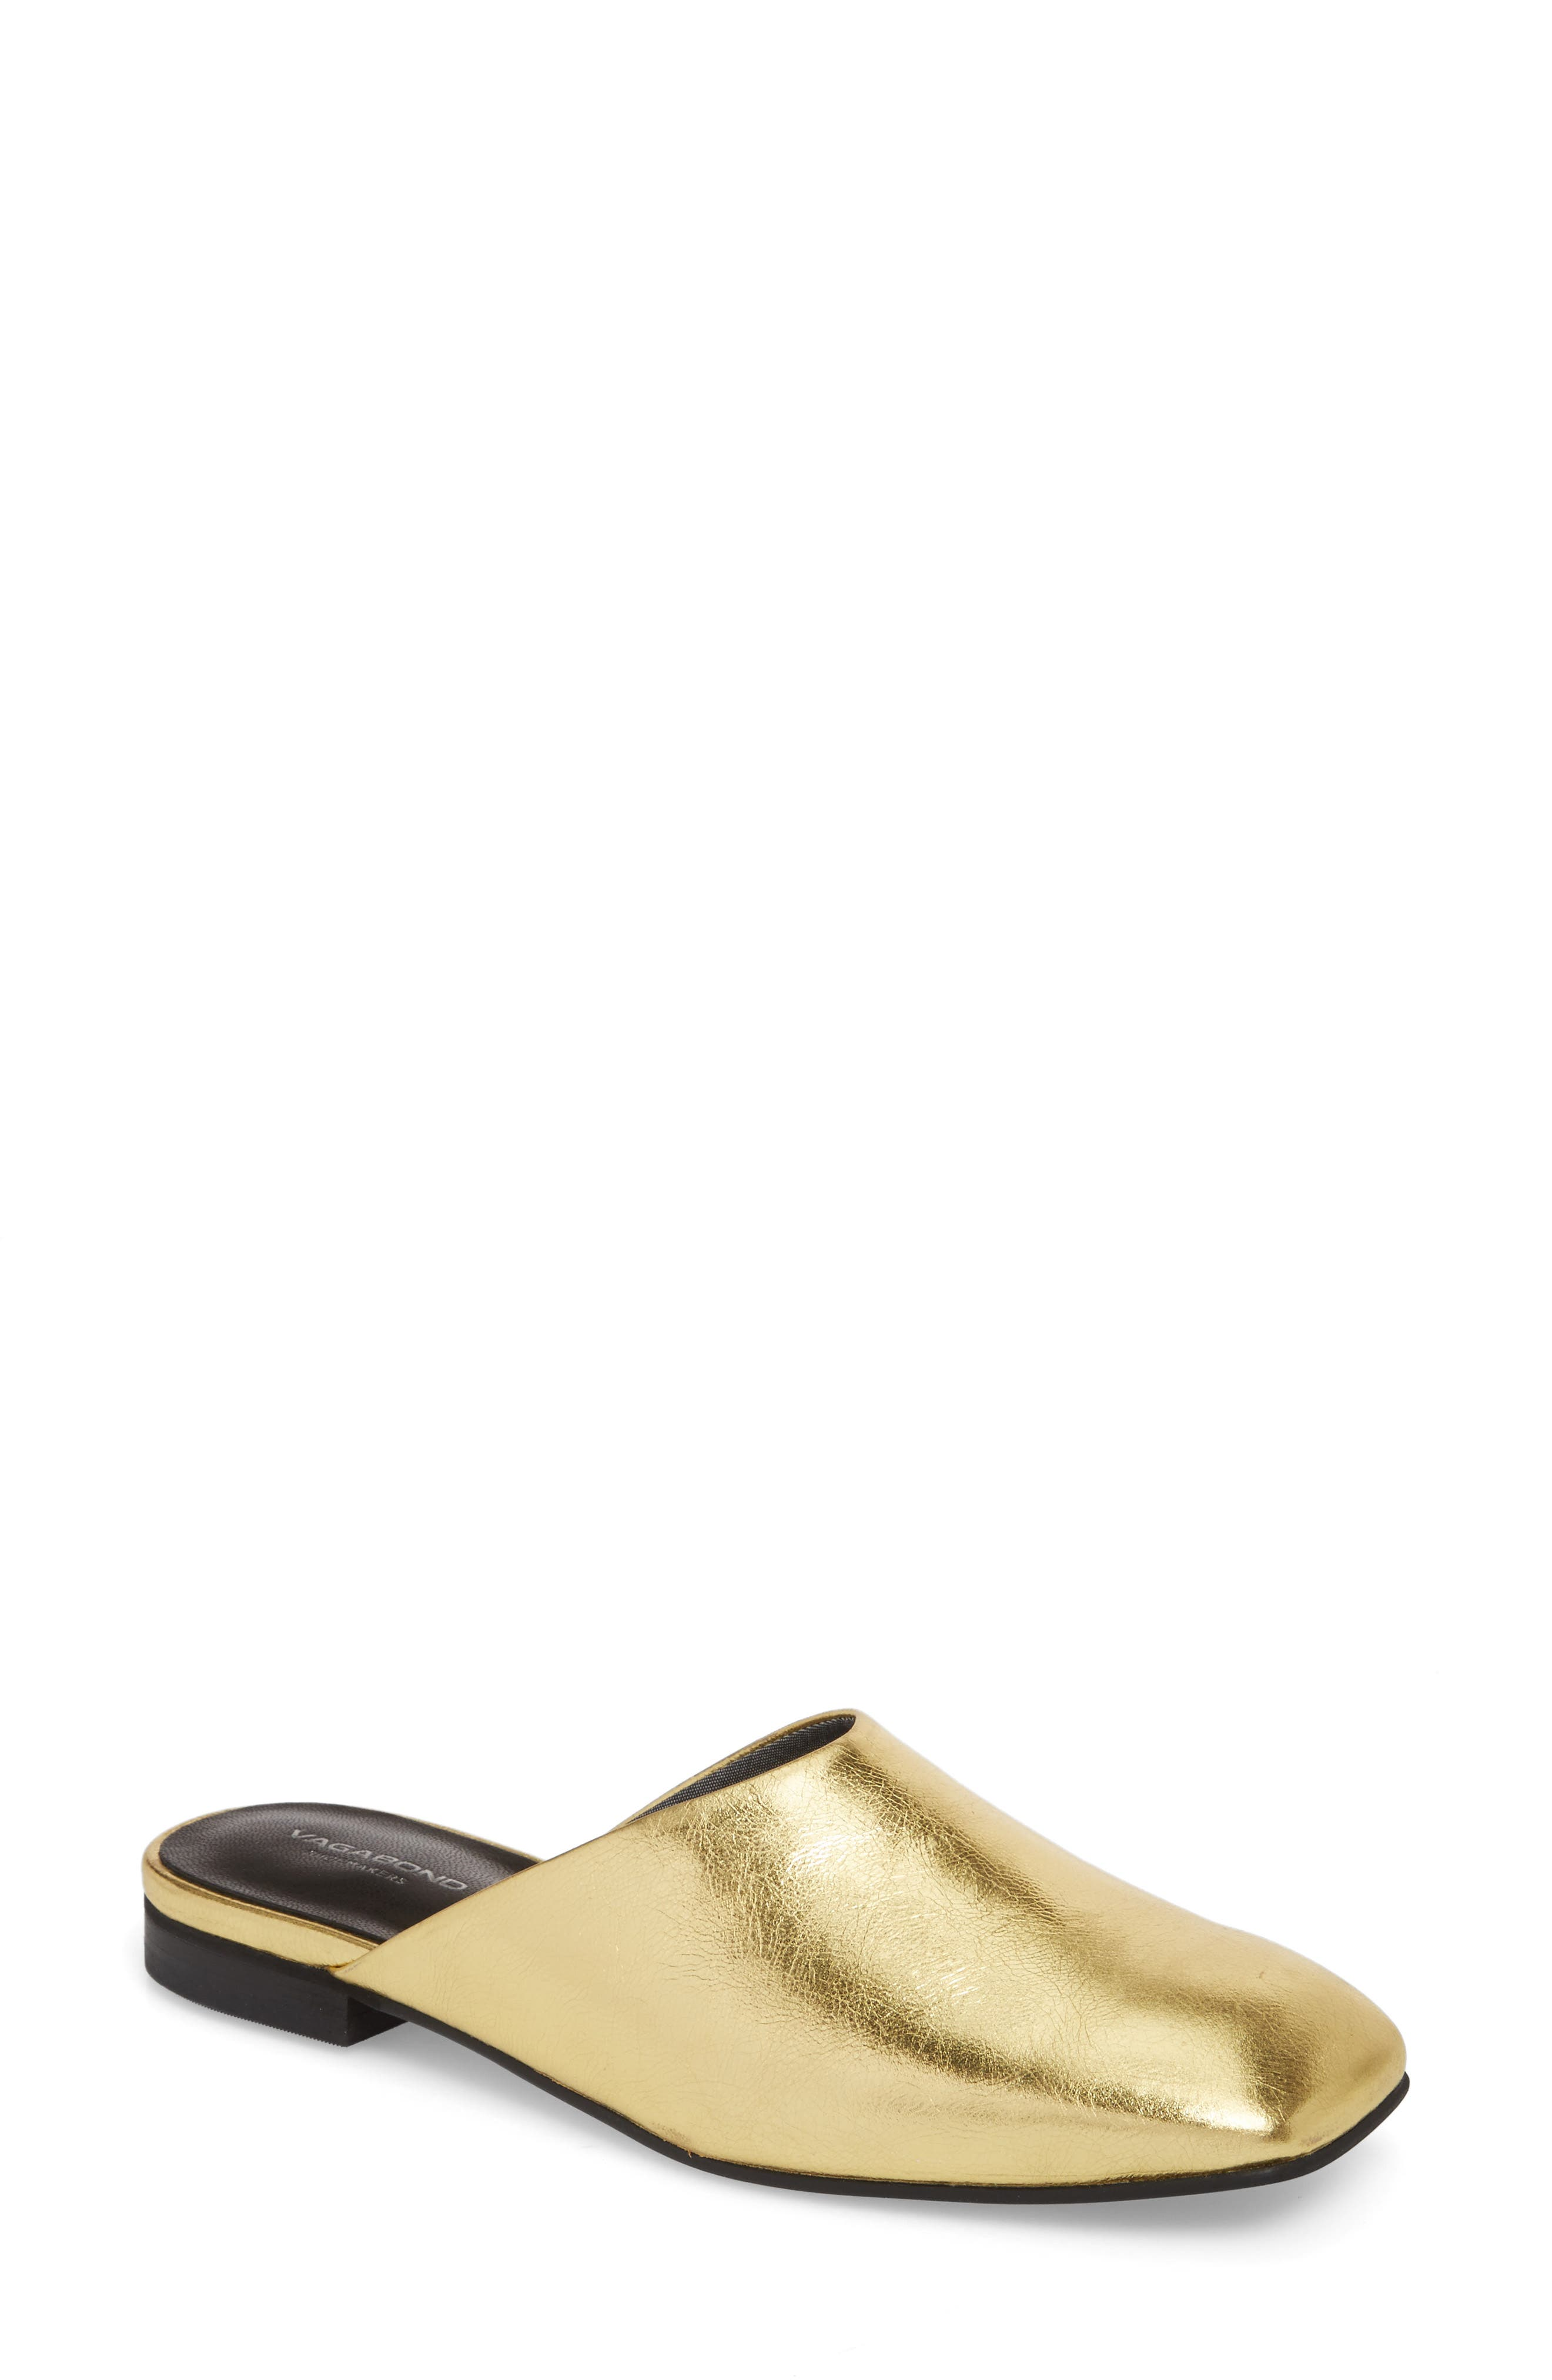 Dolores Mule,                         Main,                         color, Gold Leather